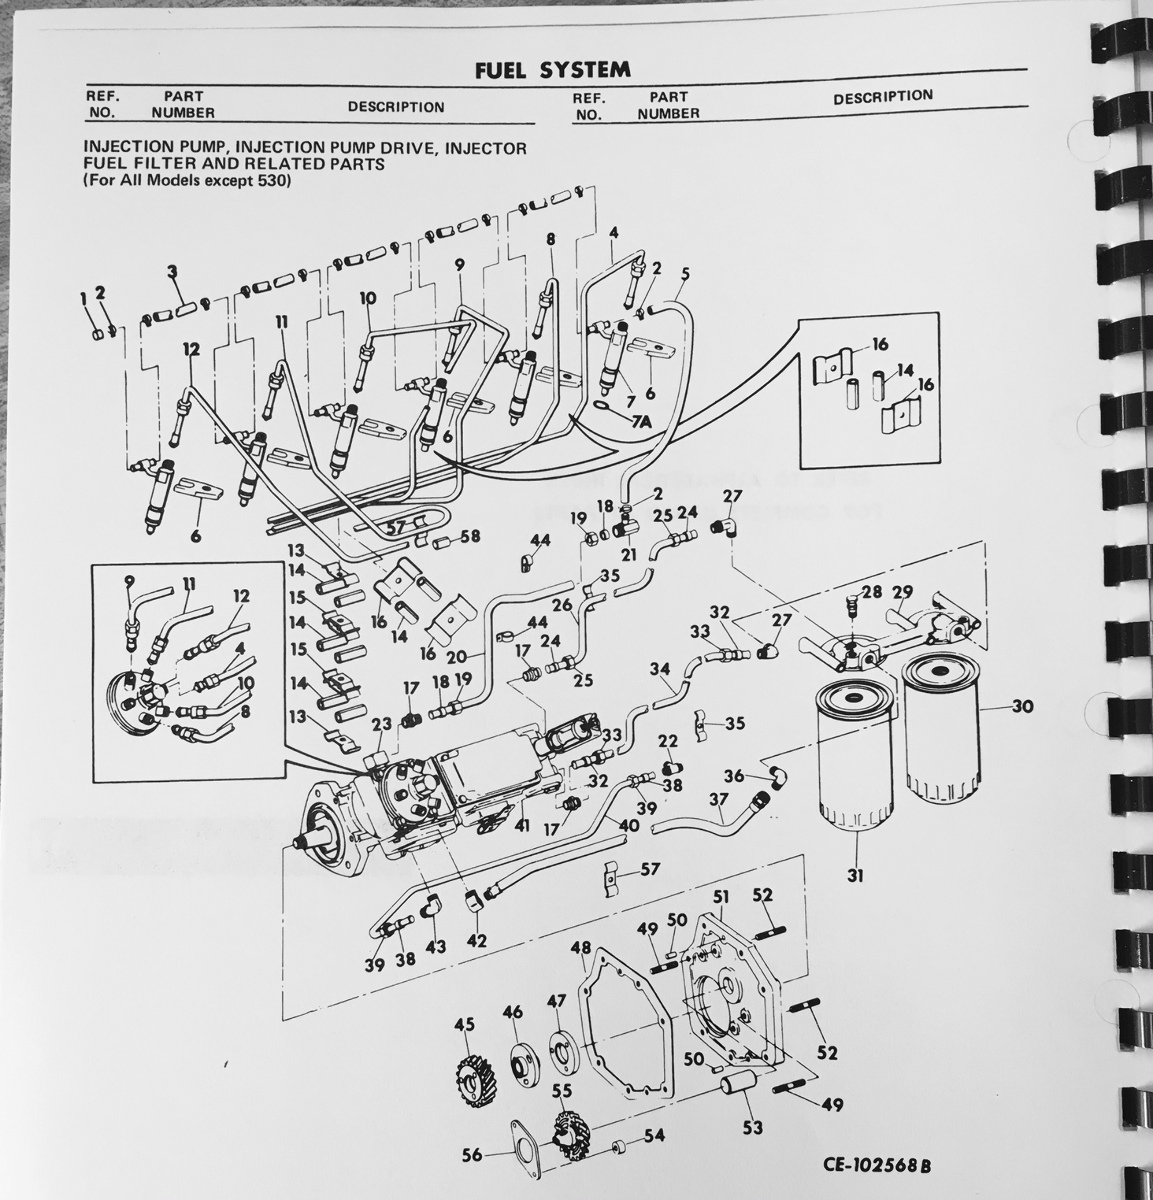 hight resolution of diagrams wiring 2004 international 4300 fuse diagram besides international 4300 wiring